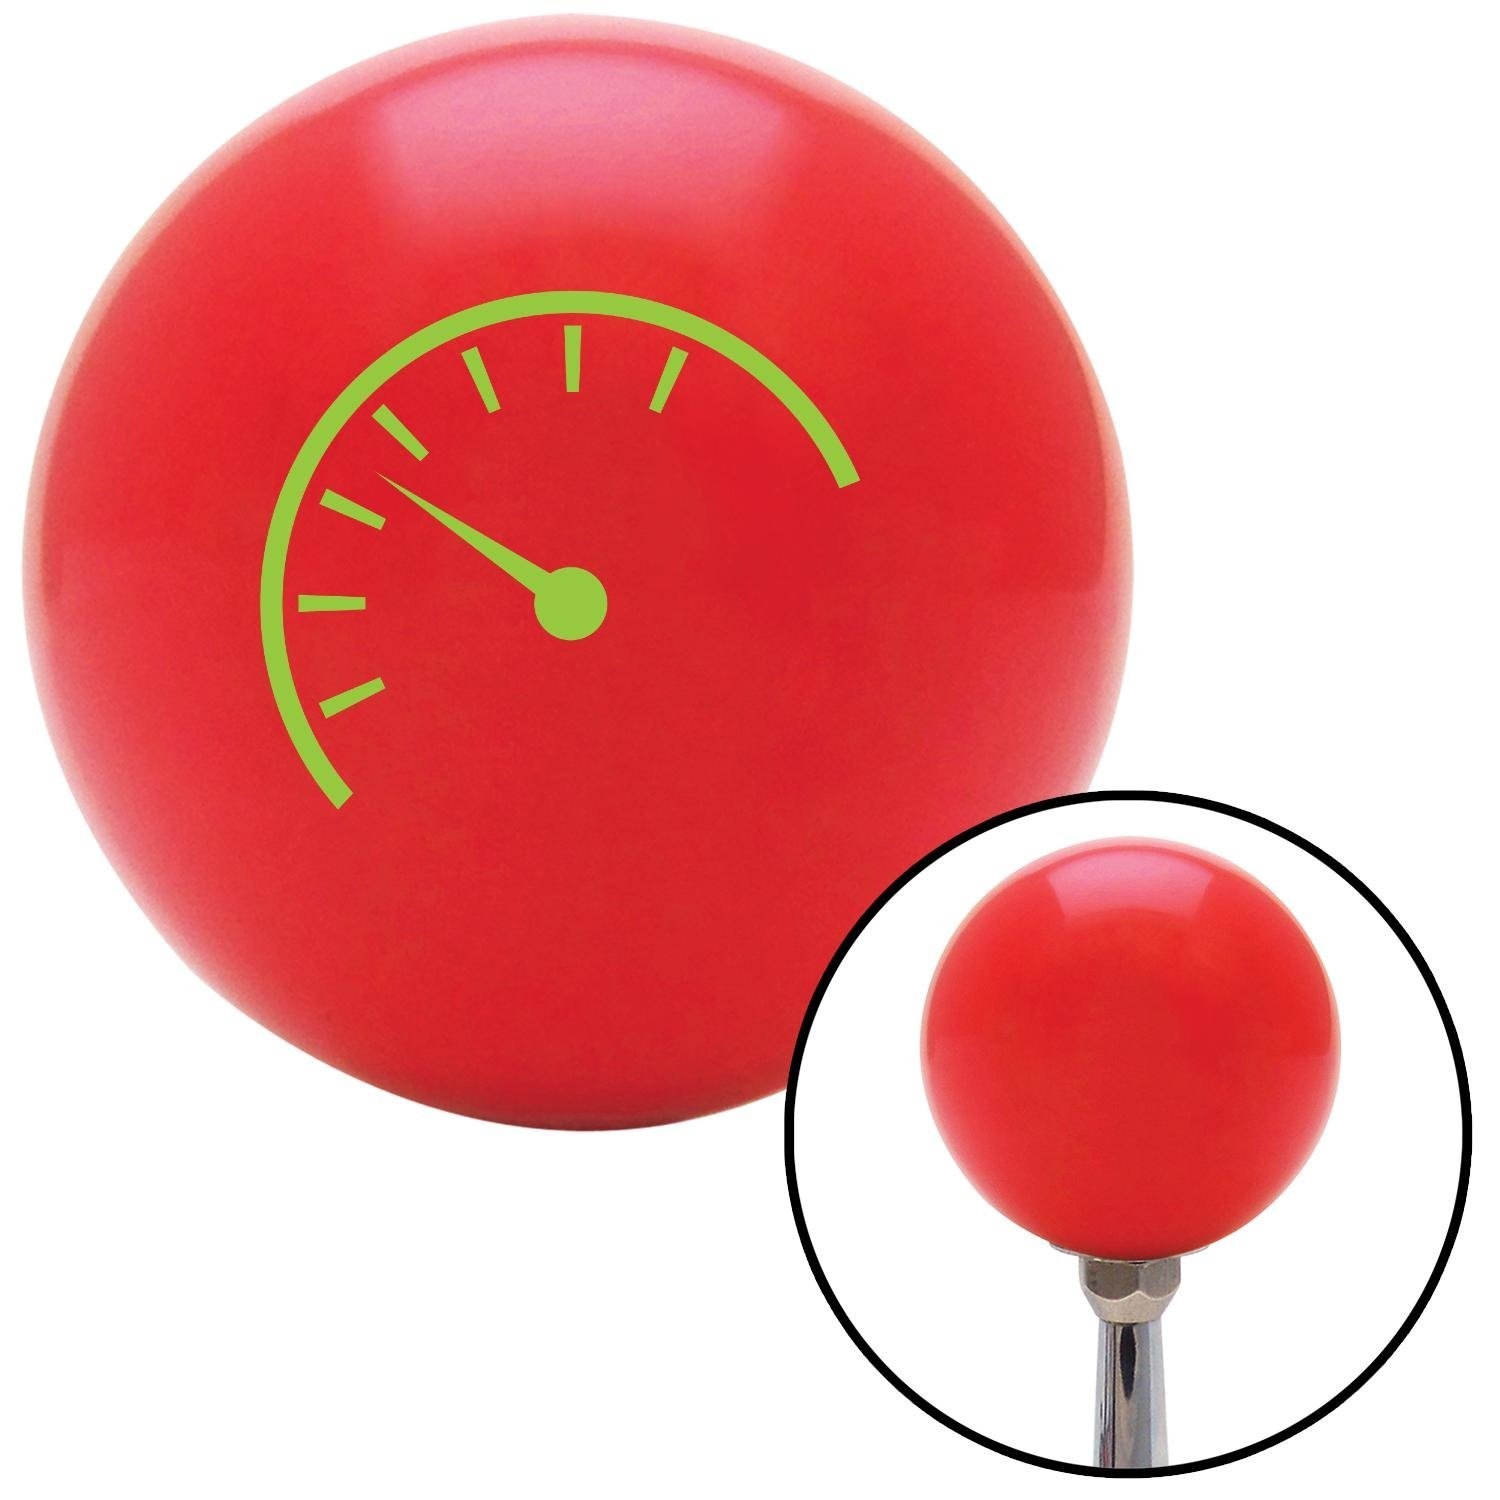 Green Instrument Gauge American Shifter 94331 Red Shift Knob with M16 x 1.5 Insert